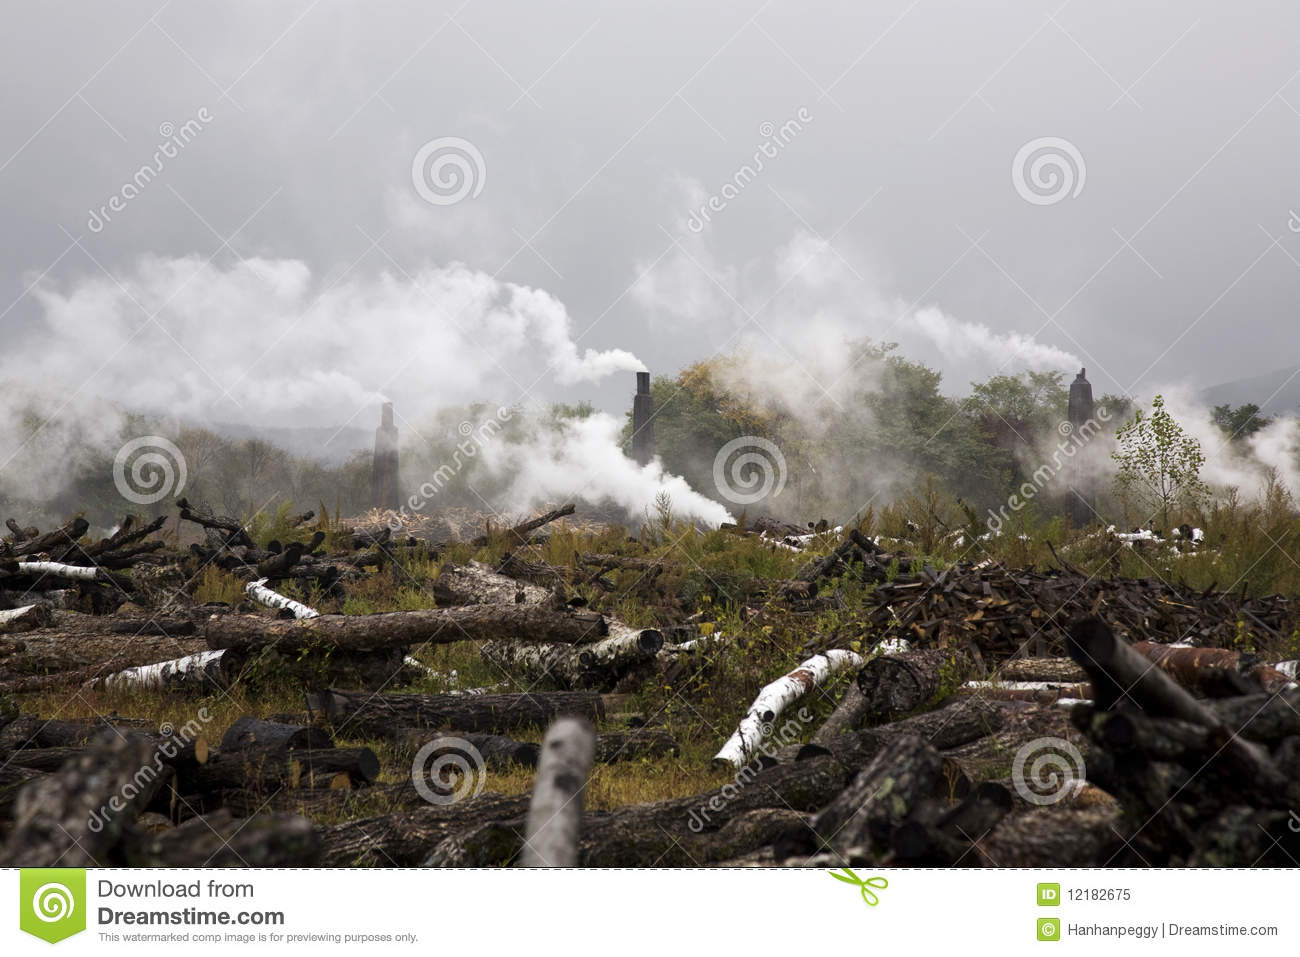 Deforestation and environmental pollution